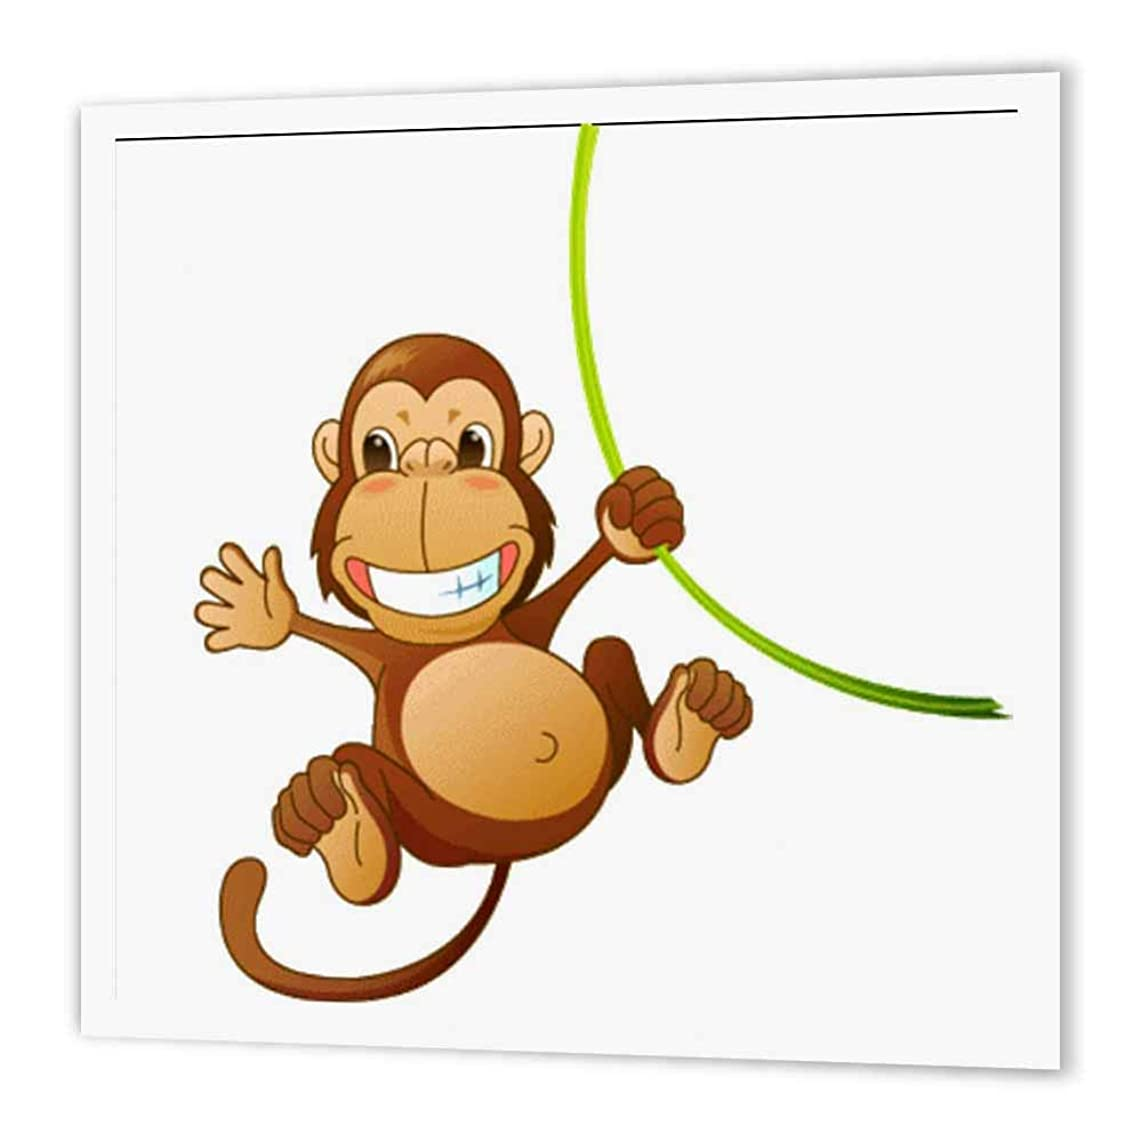 3dRose ht_37462_3 Cute Cartoon Monkey on Green Vine-Iron on Heat Transfer Paper for White Material, 10 by 10-Inch